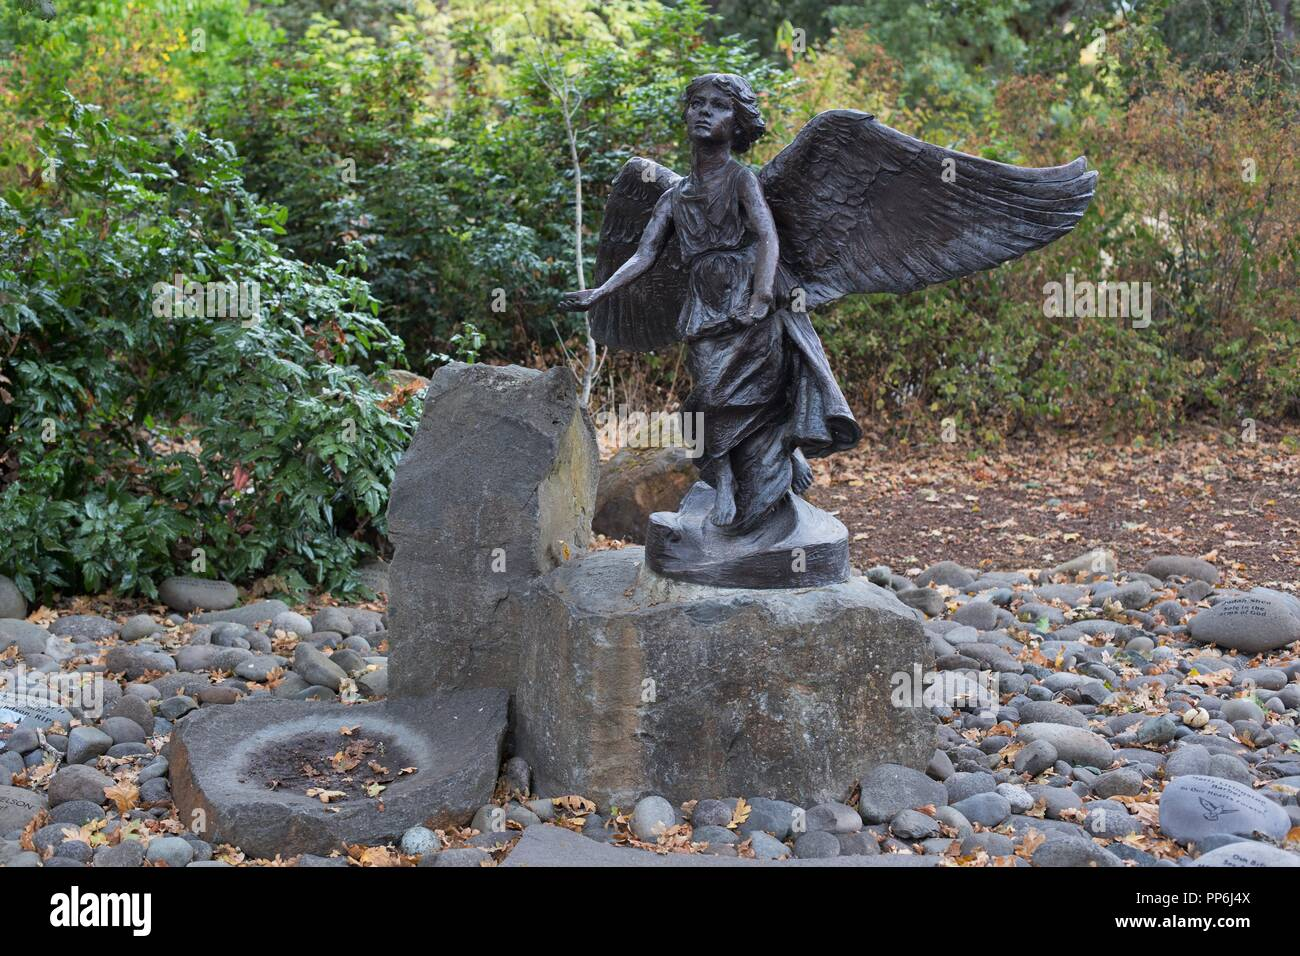 The Angel of Hope statue in Silverton, Oregon, a memorial place for children who have died. - Stock Image